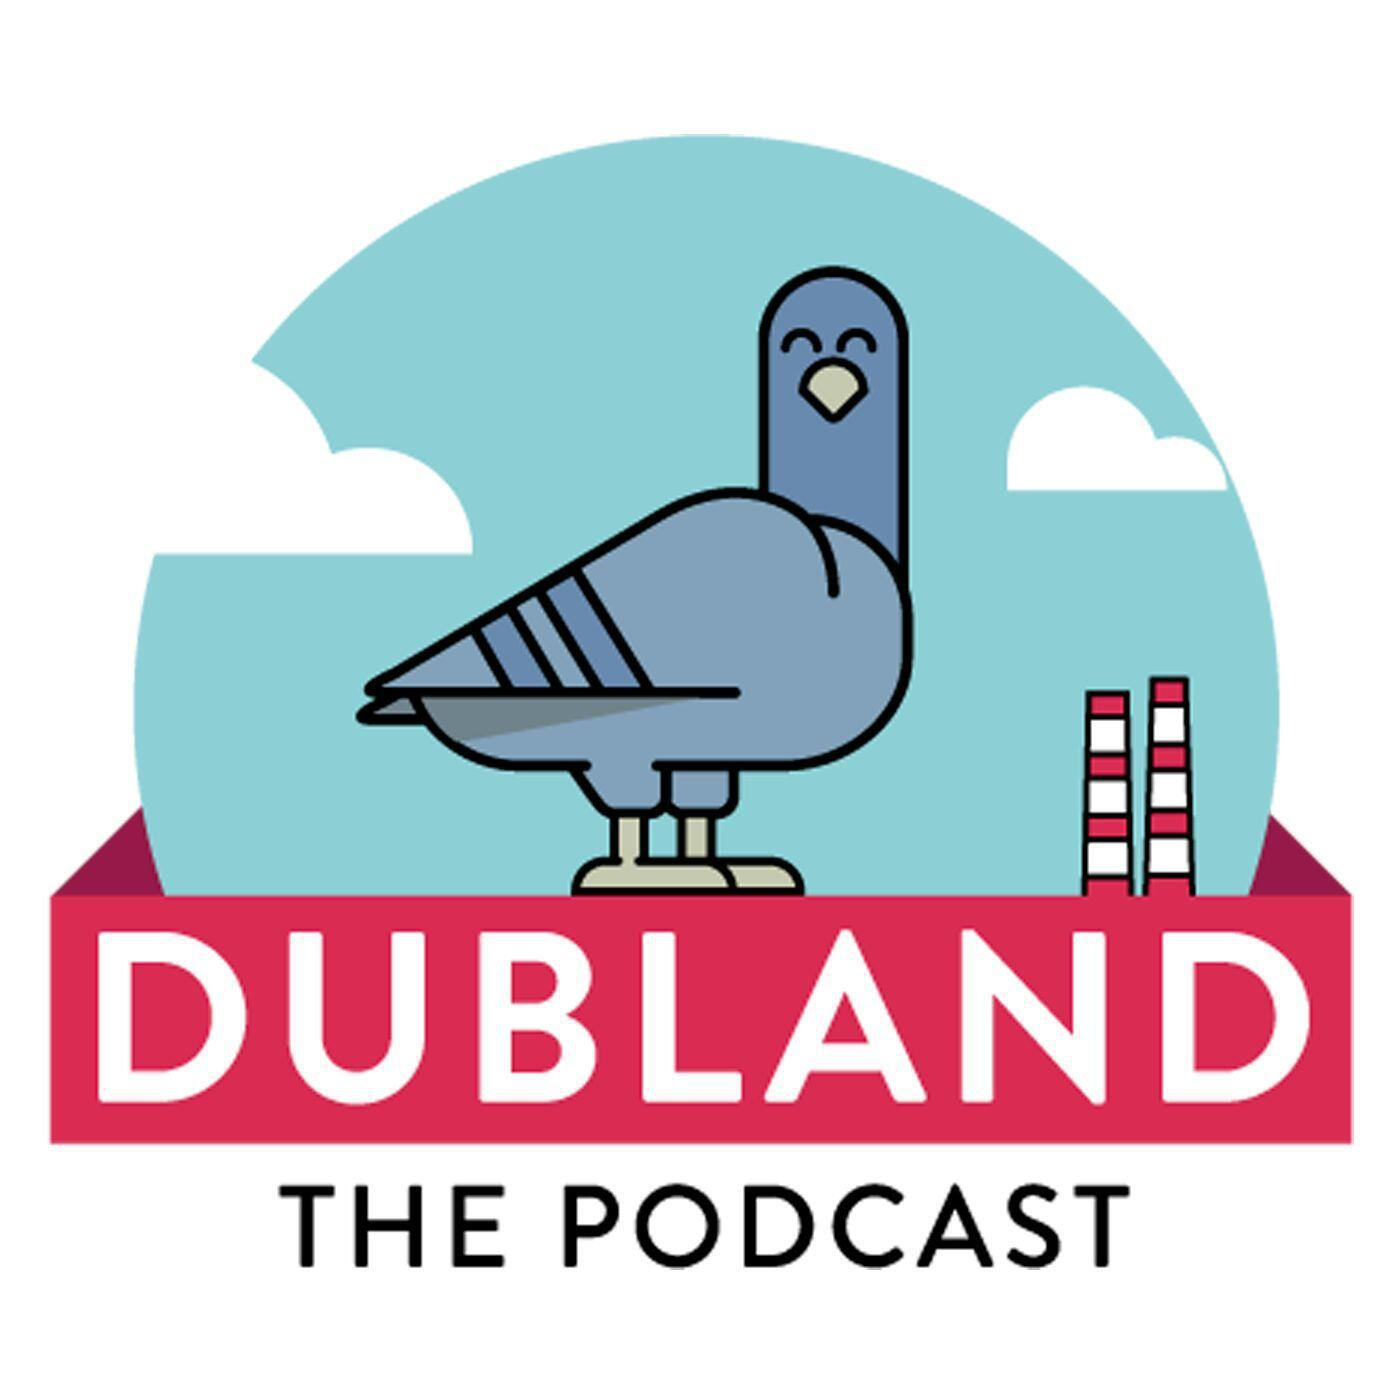 DUBLAND THE PODCAST EPISODE 19